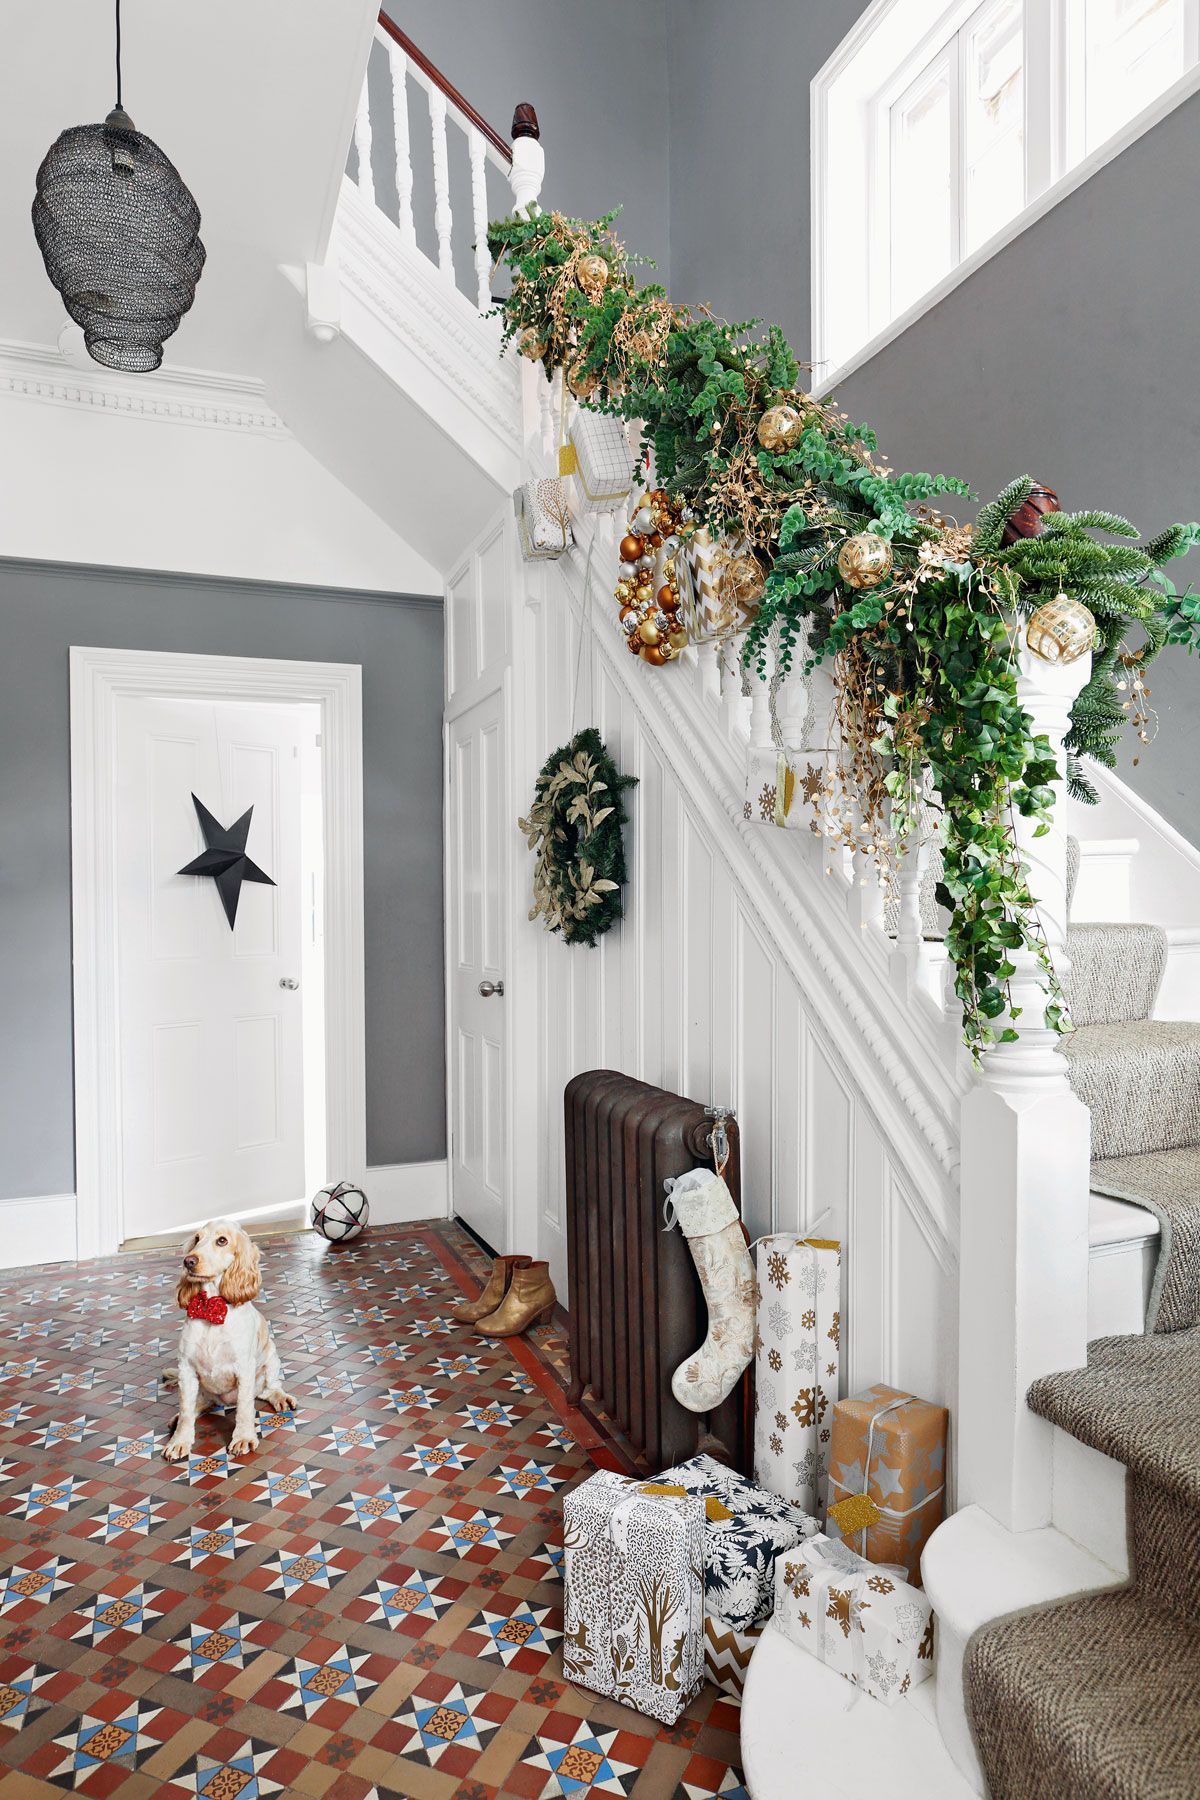 It's beginning to look a lot like Christmas with these festive interior ideas